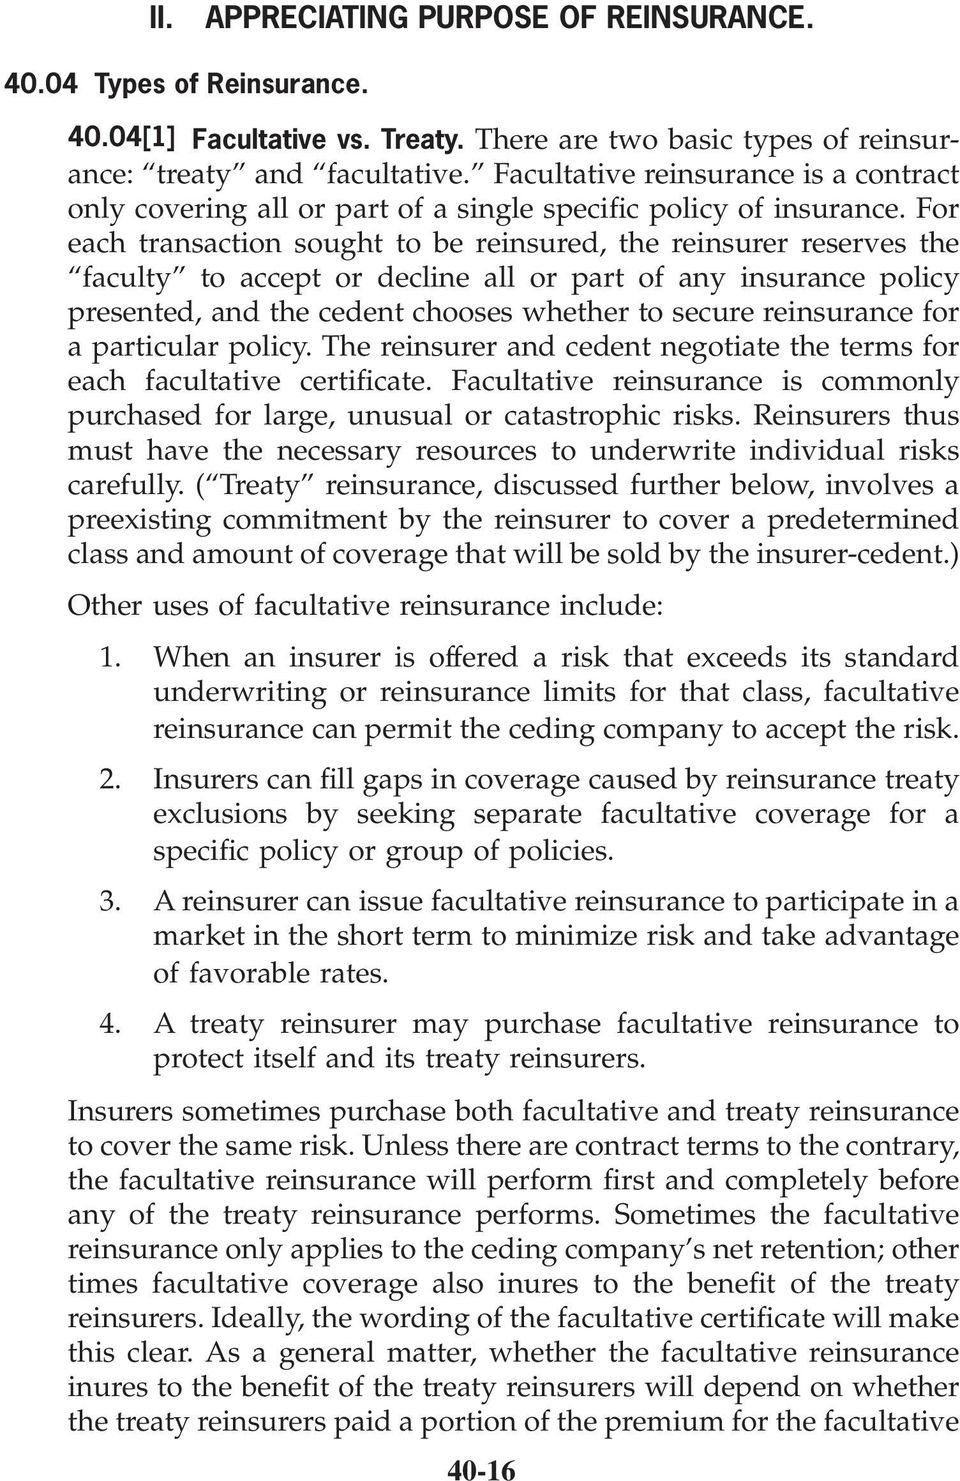 For each transaction sought to be reinsured, the reinsurer reserves the faculty to accept or decline all or part of any insurance policy presented, and the cedent chooses whether to secure